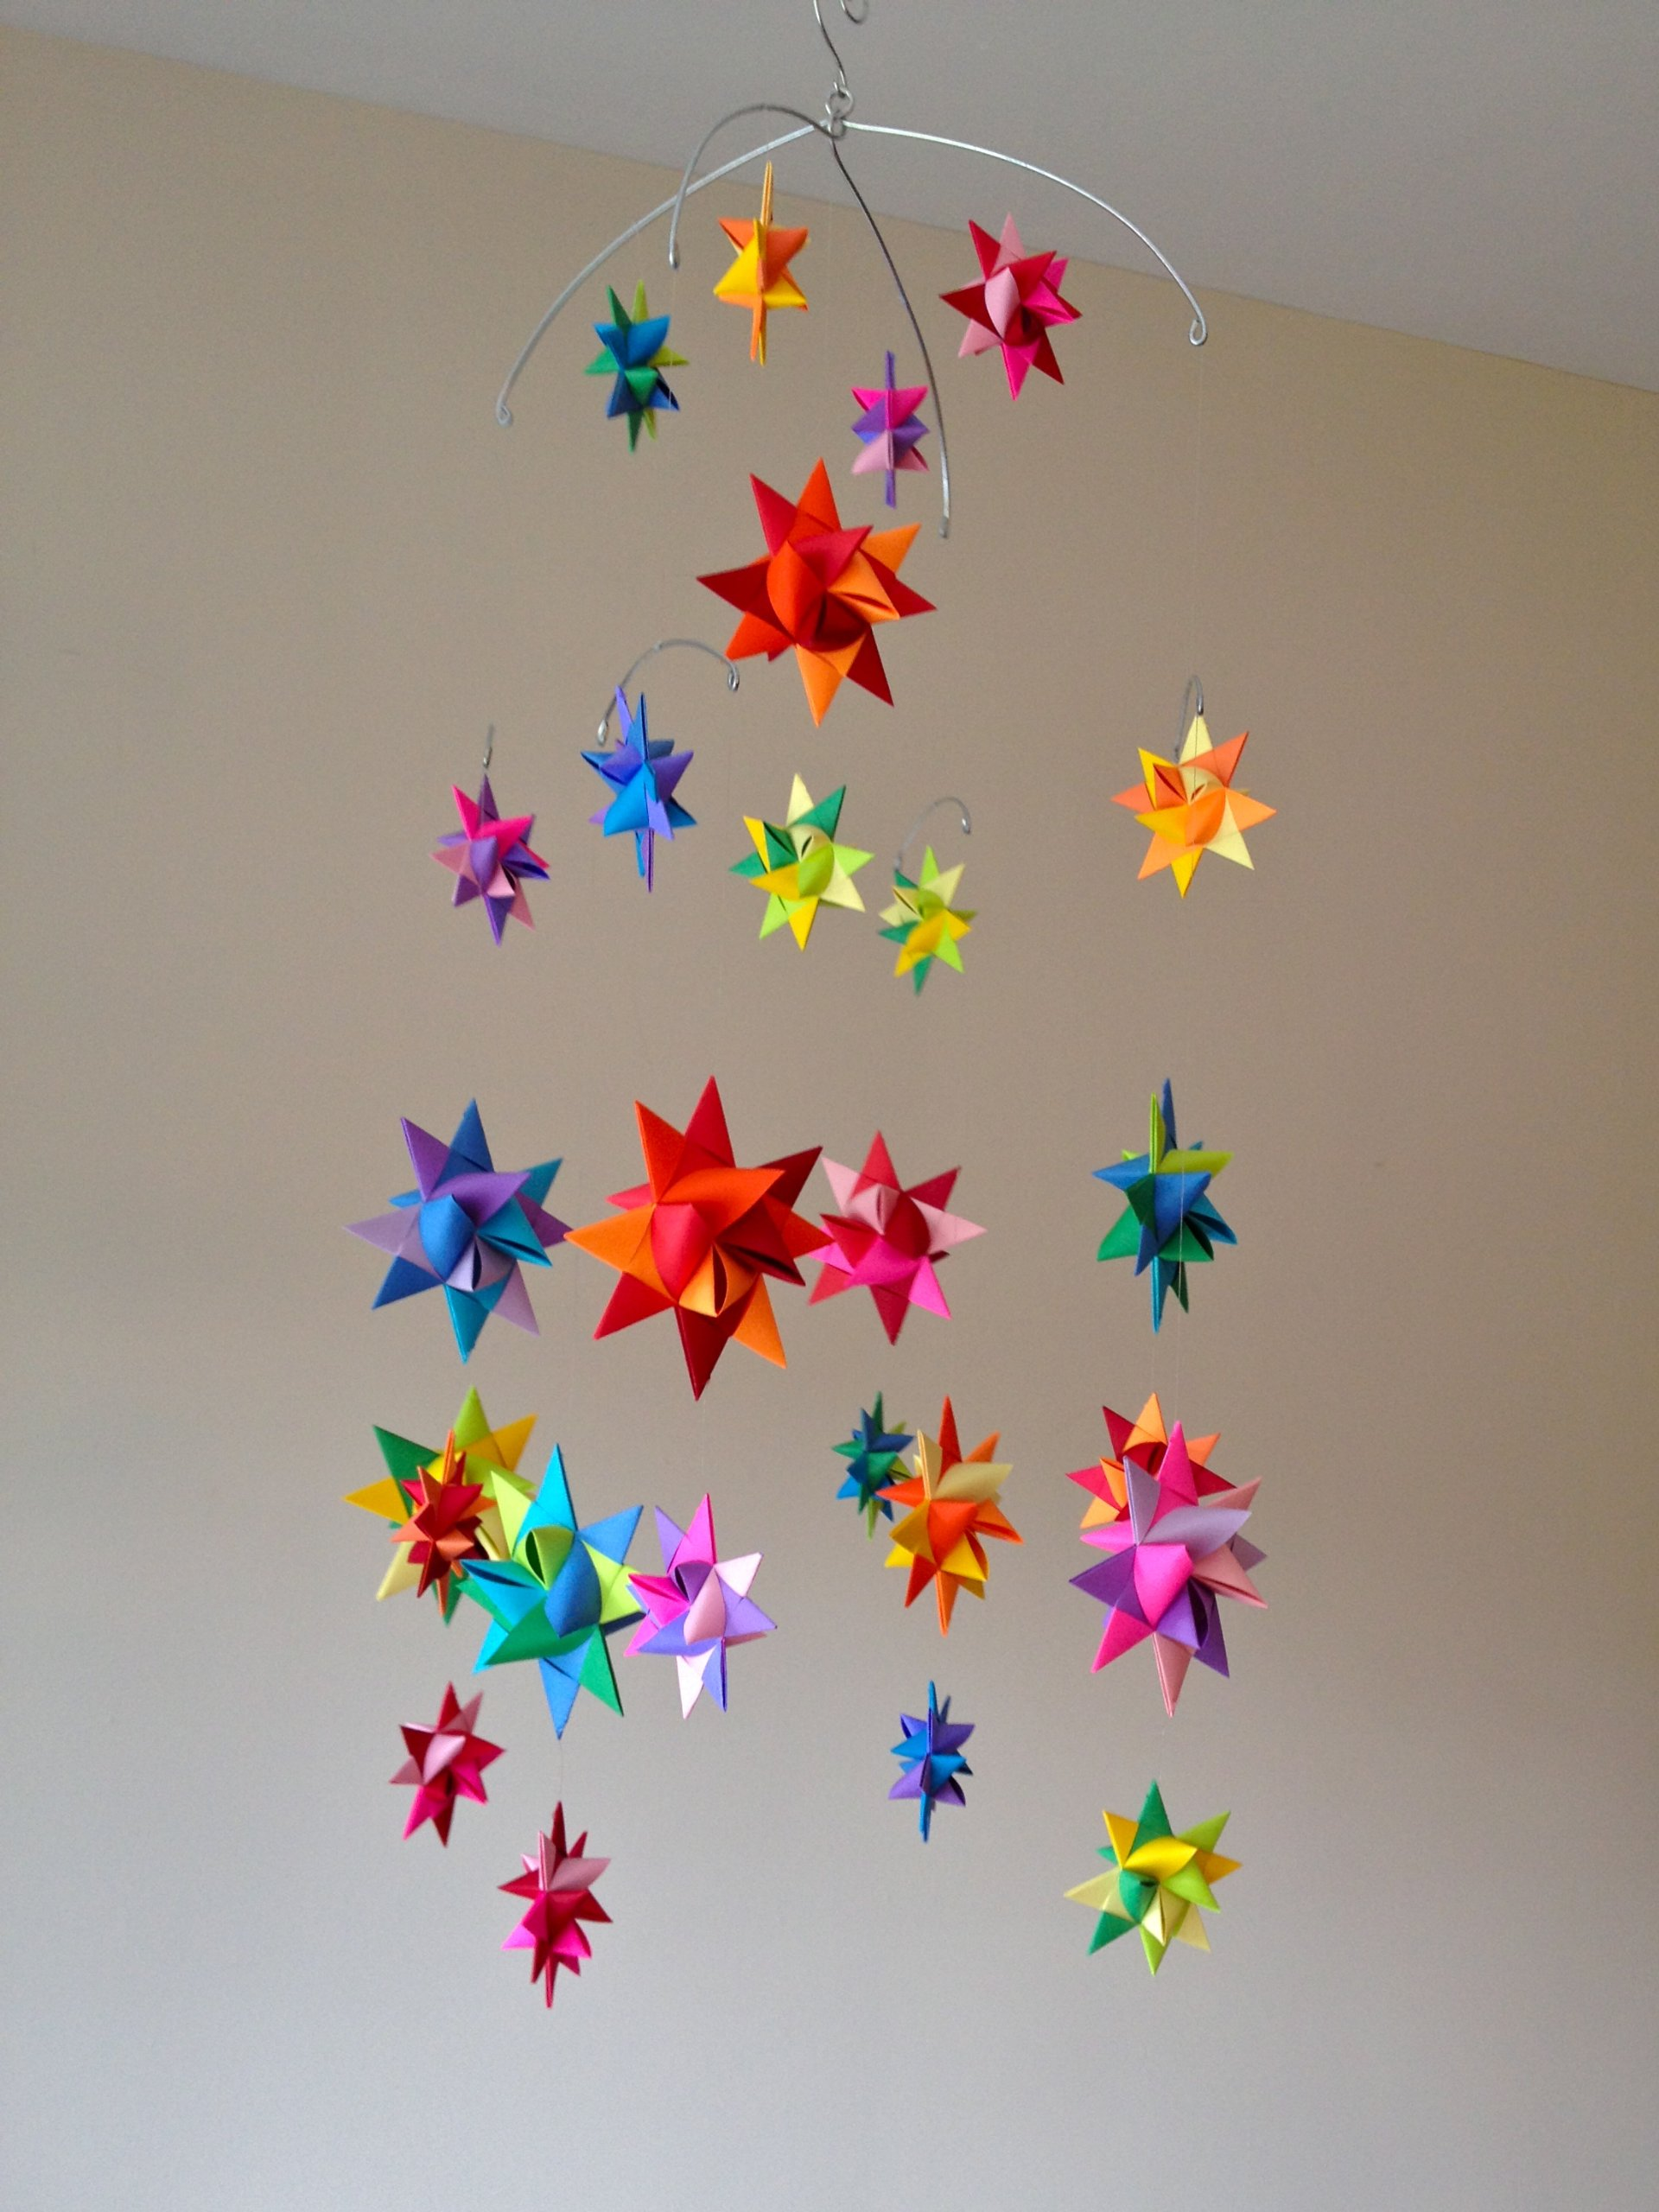 Star Craft Constellation Star Mobile, Rainbow by Star Craft